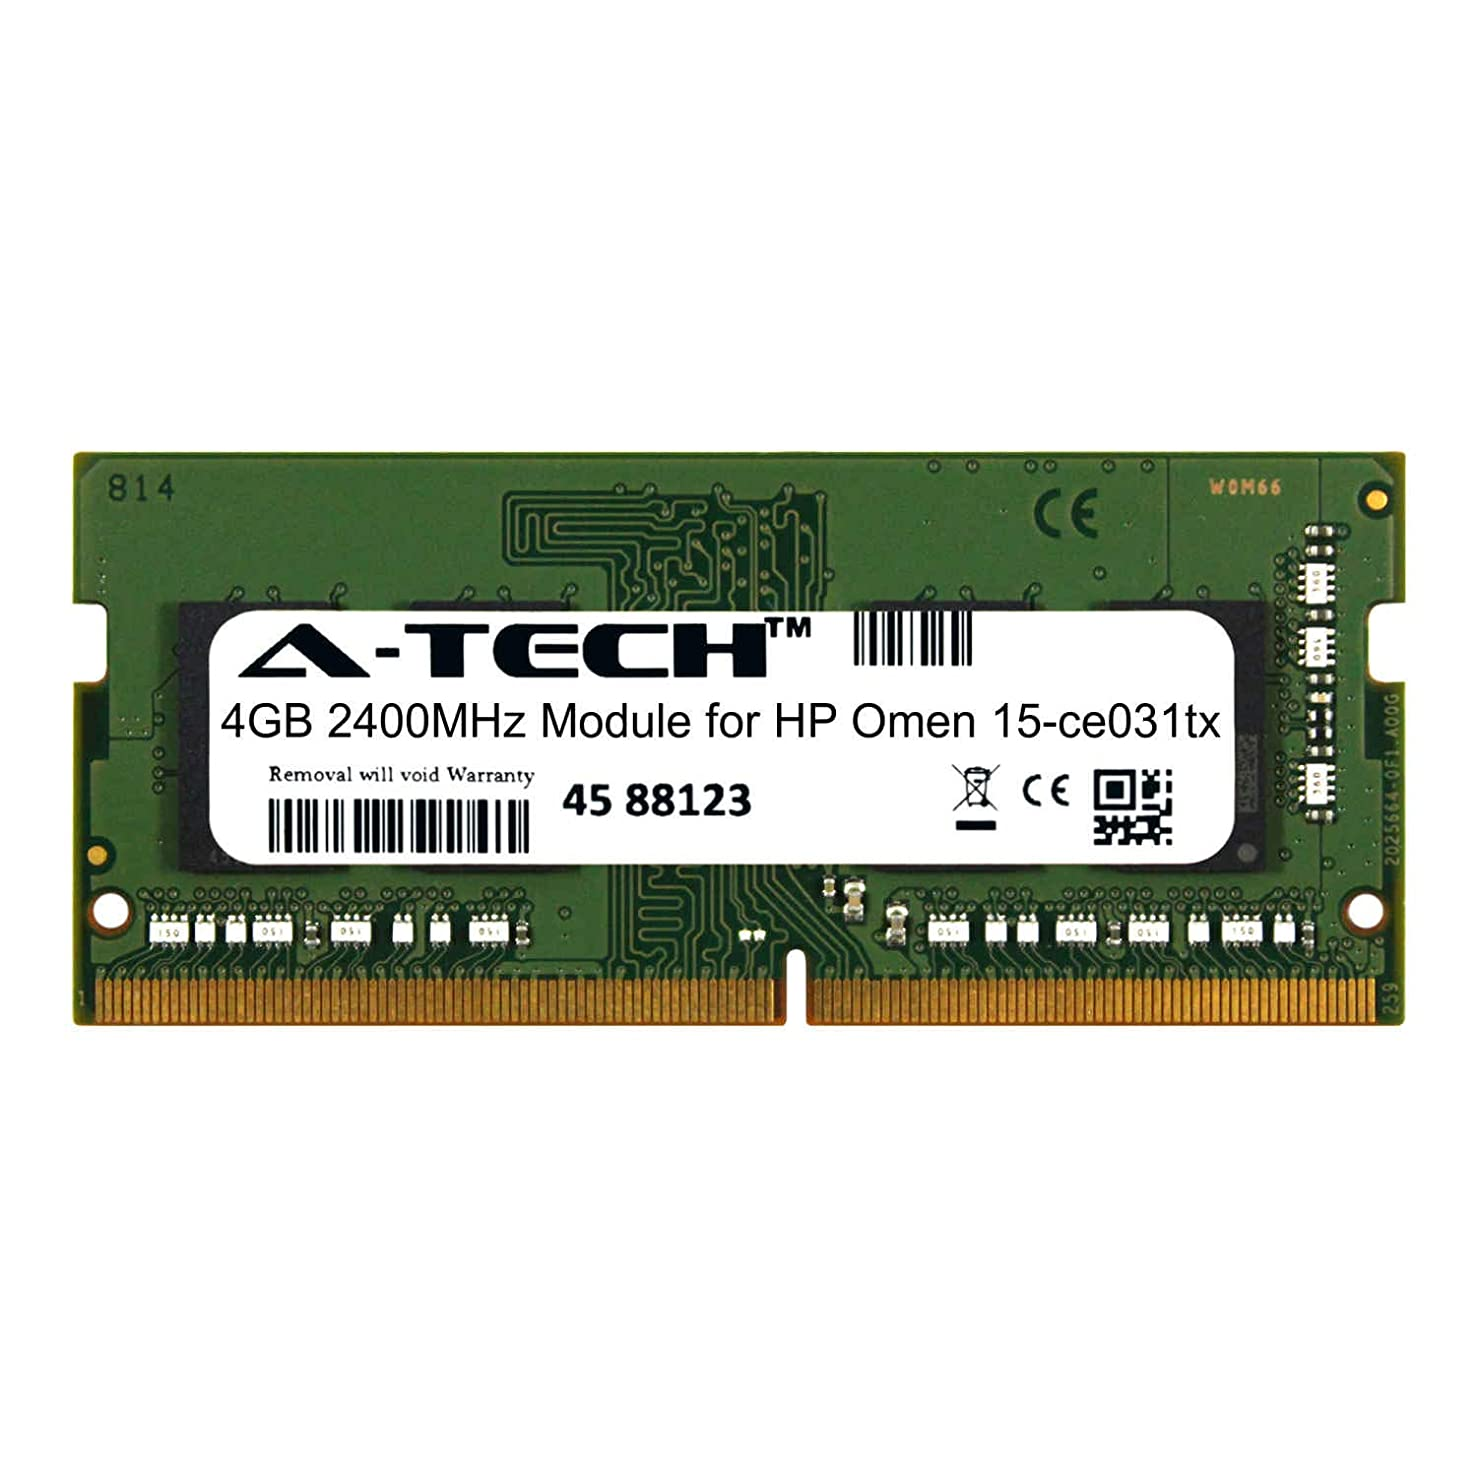 A-Tech 4GB Module for HP Omen 15-ce031tx Laptop & Notebook Compatible DDR4 2400Mhz Memory Ram (ATMS280314A25824X1)